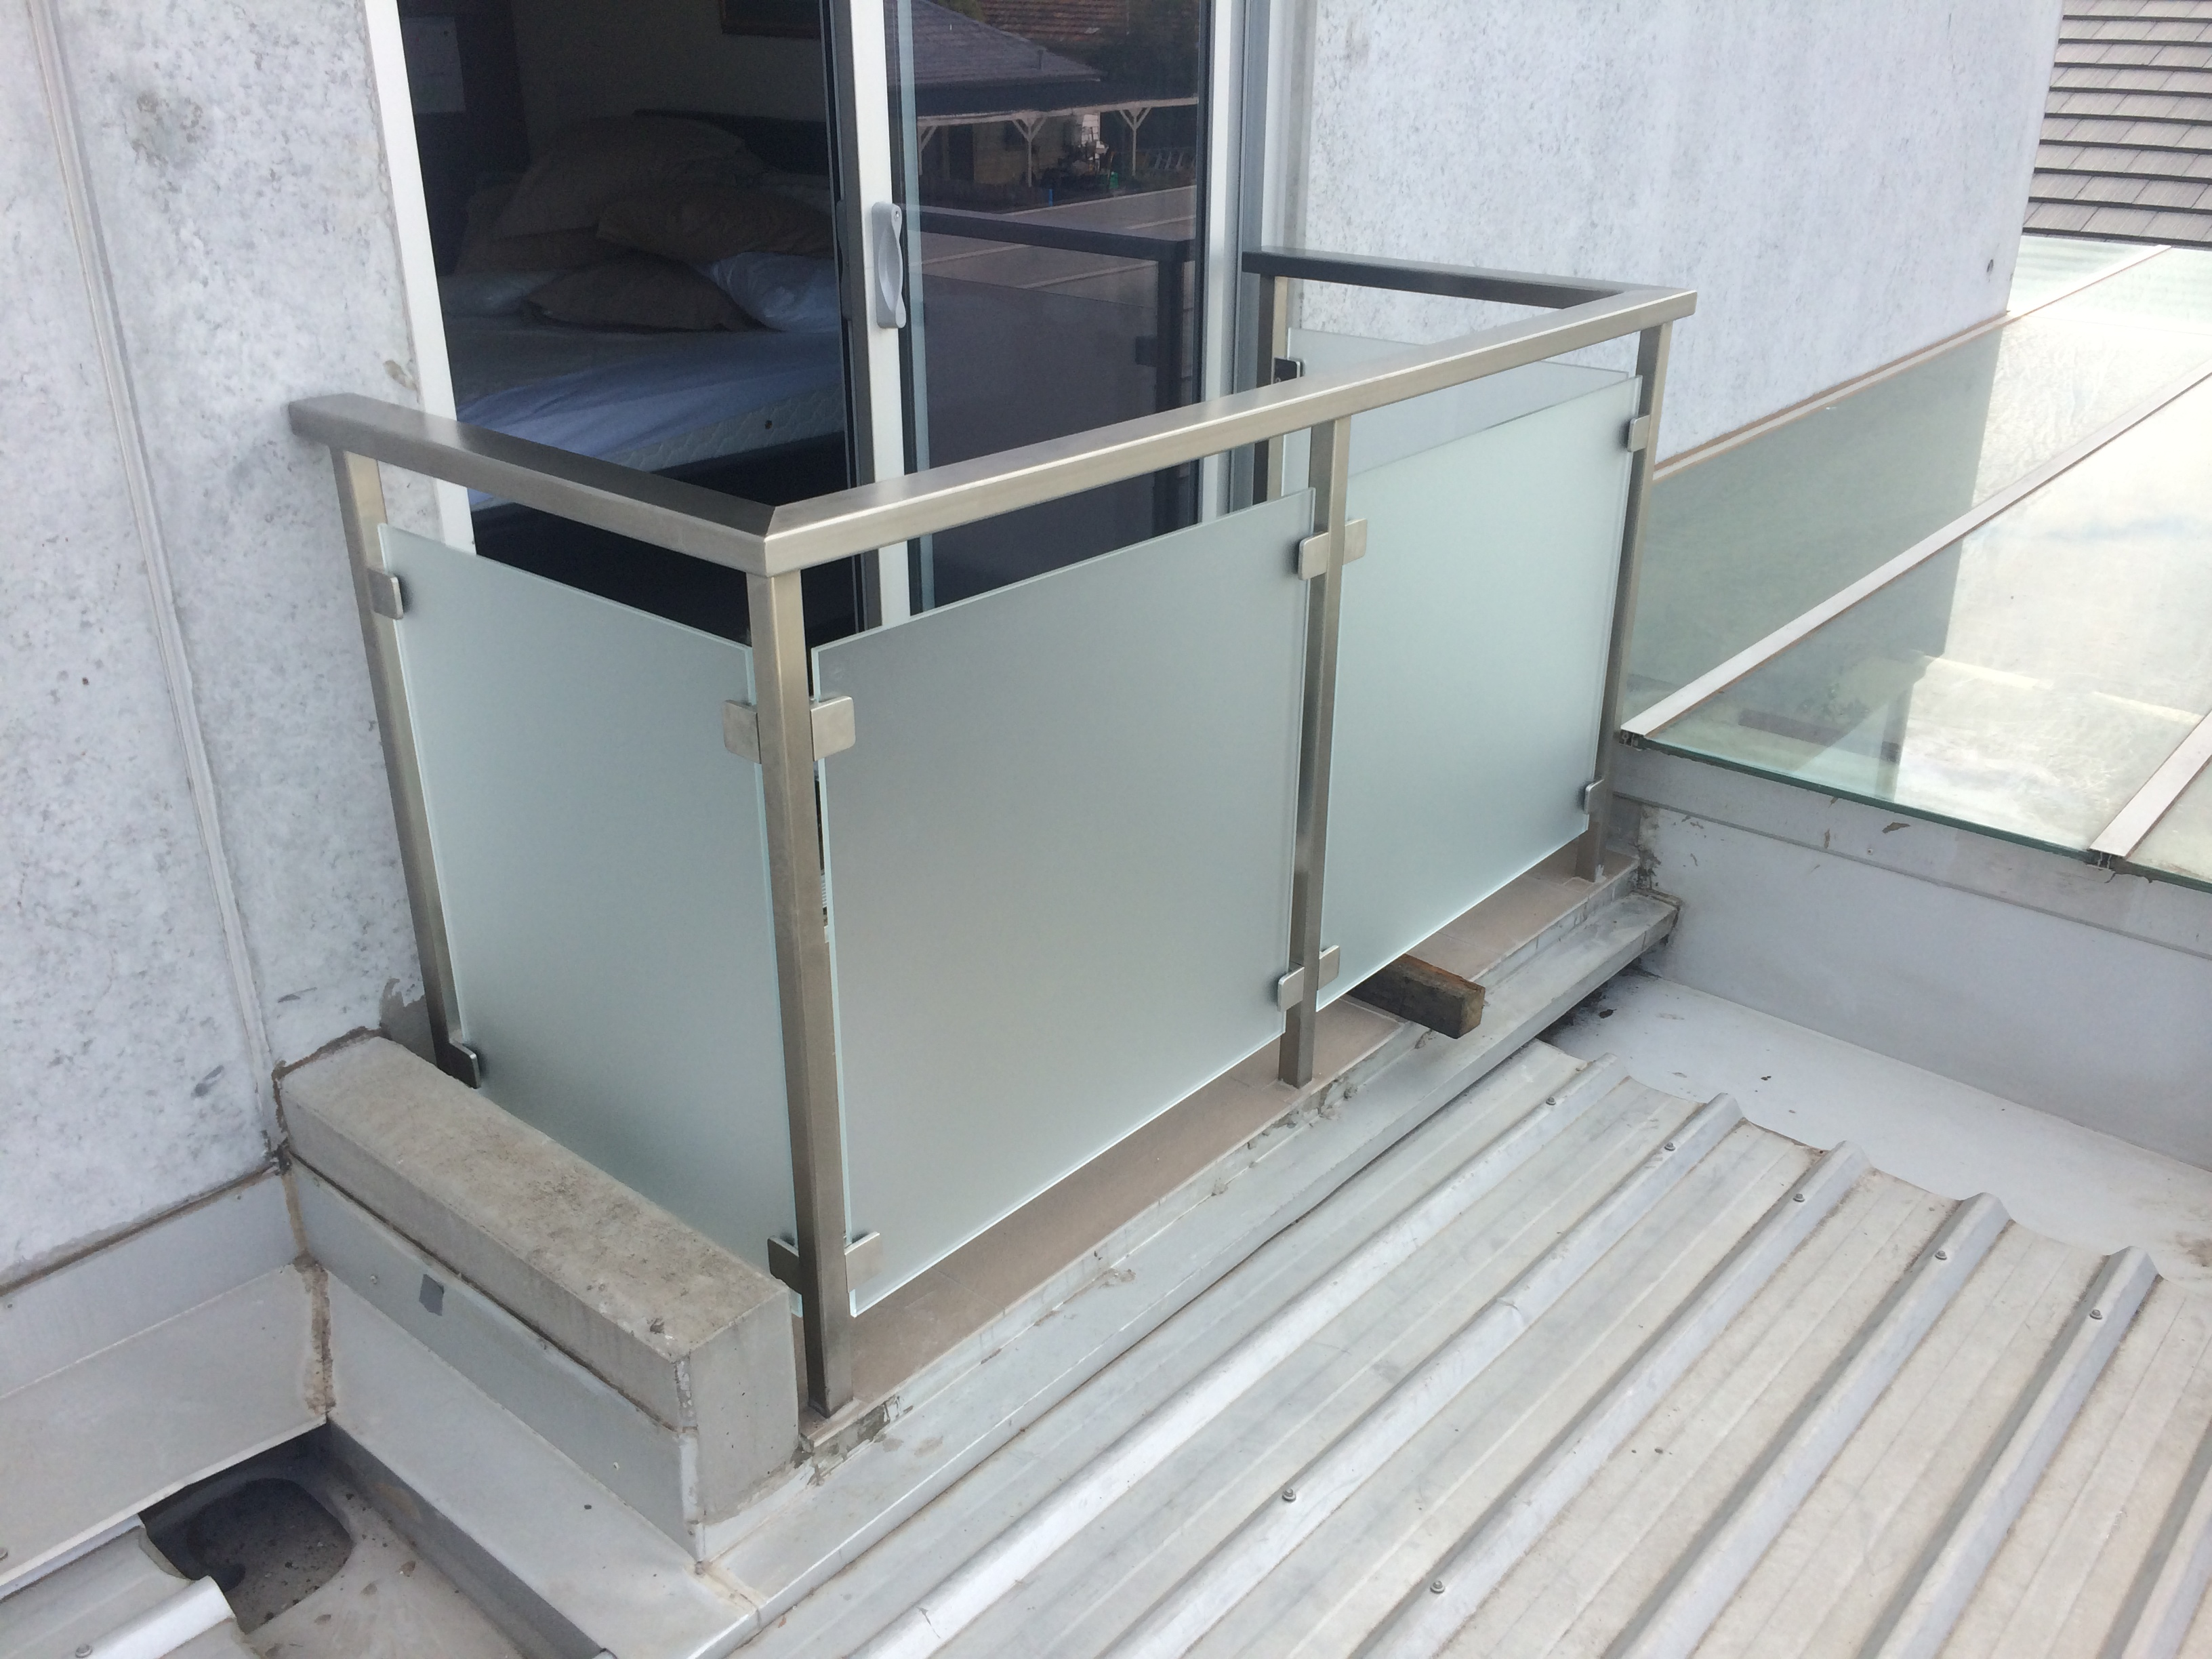 Frosted glass balustrade with 80x40 toprail